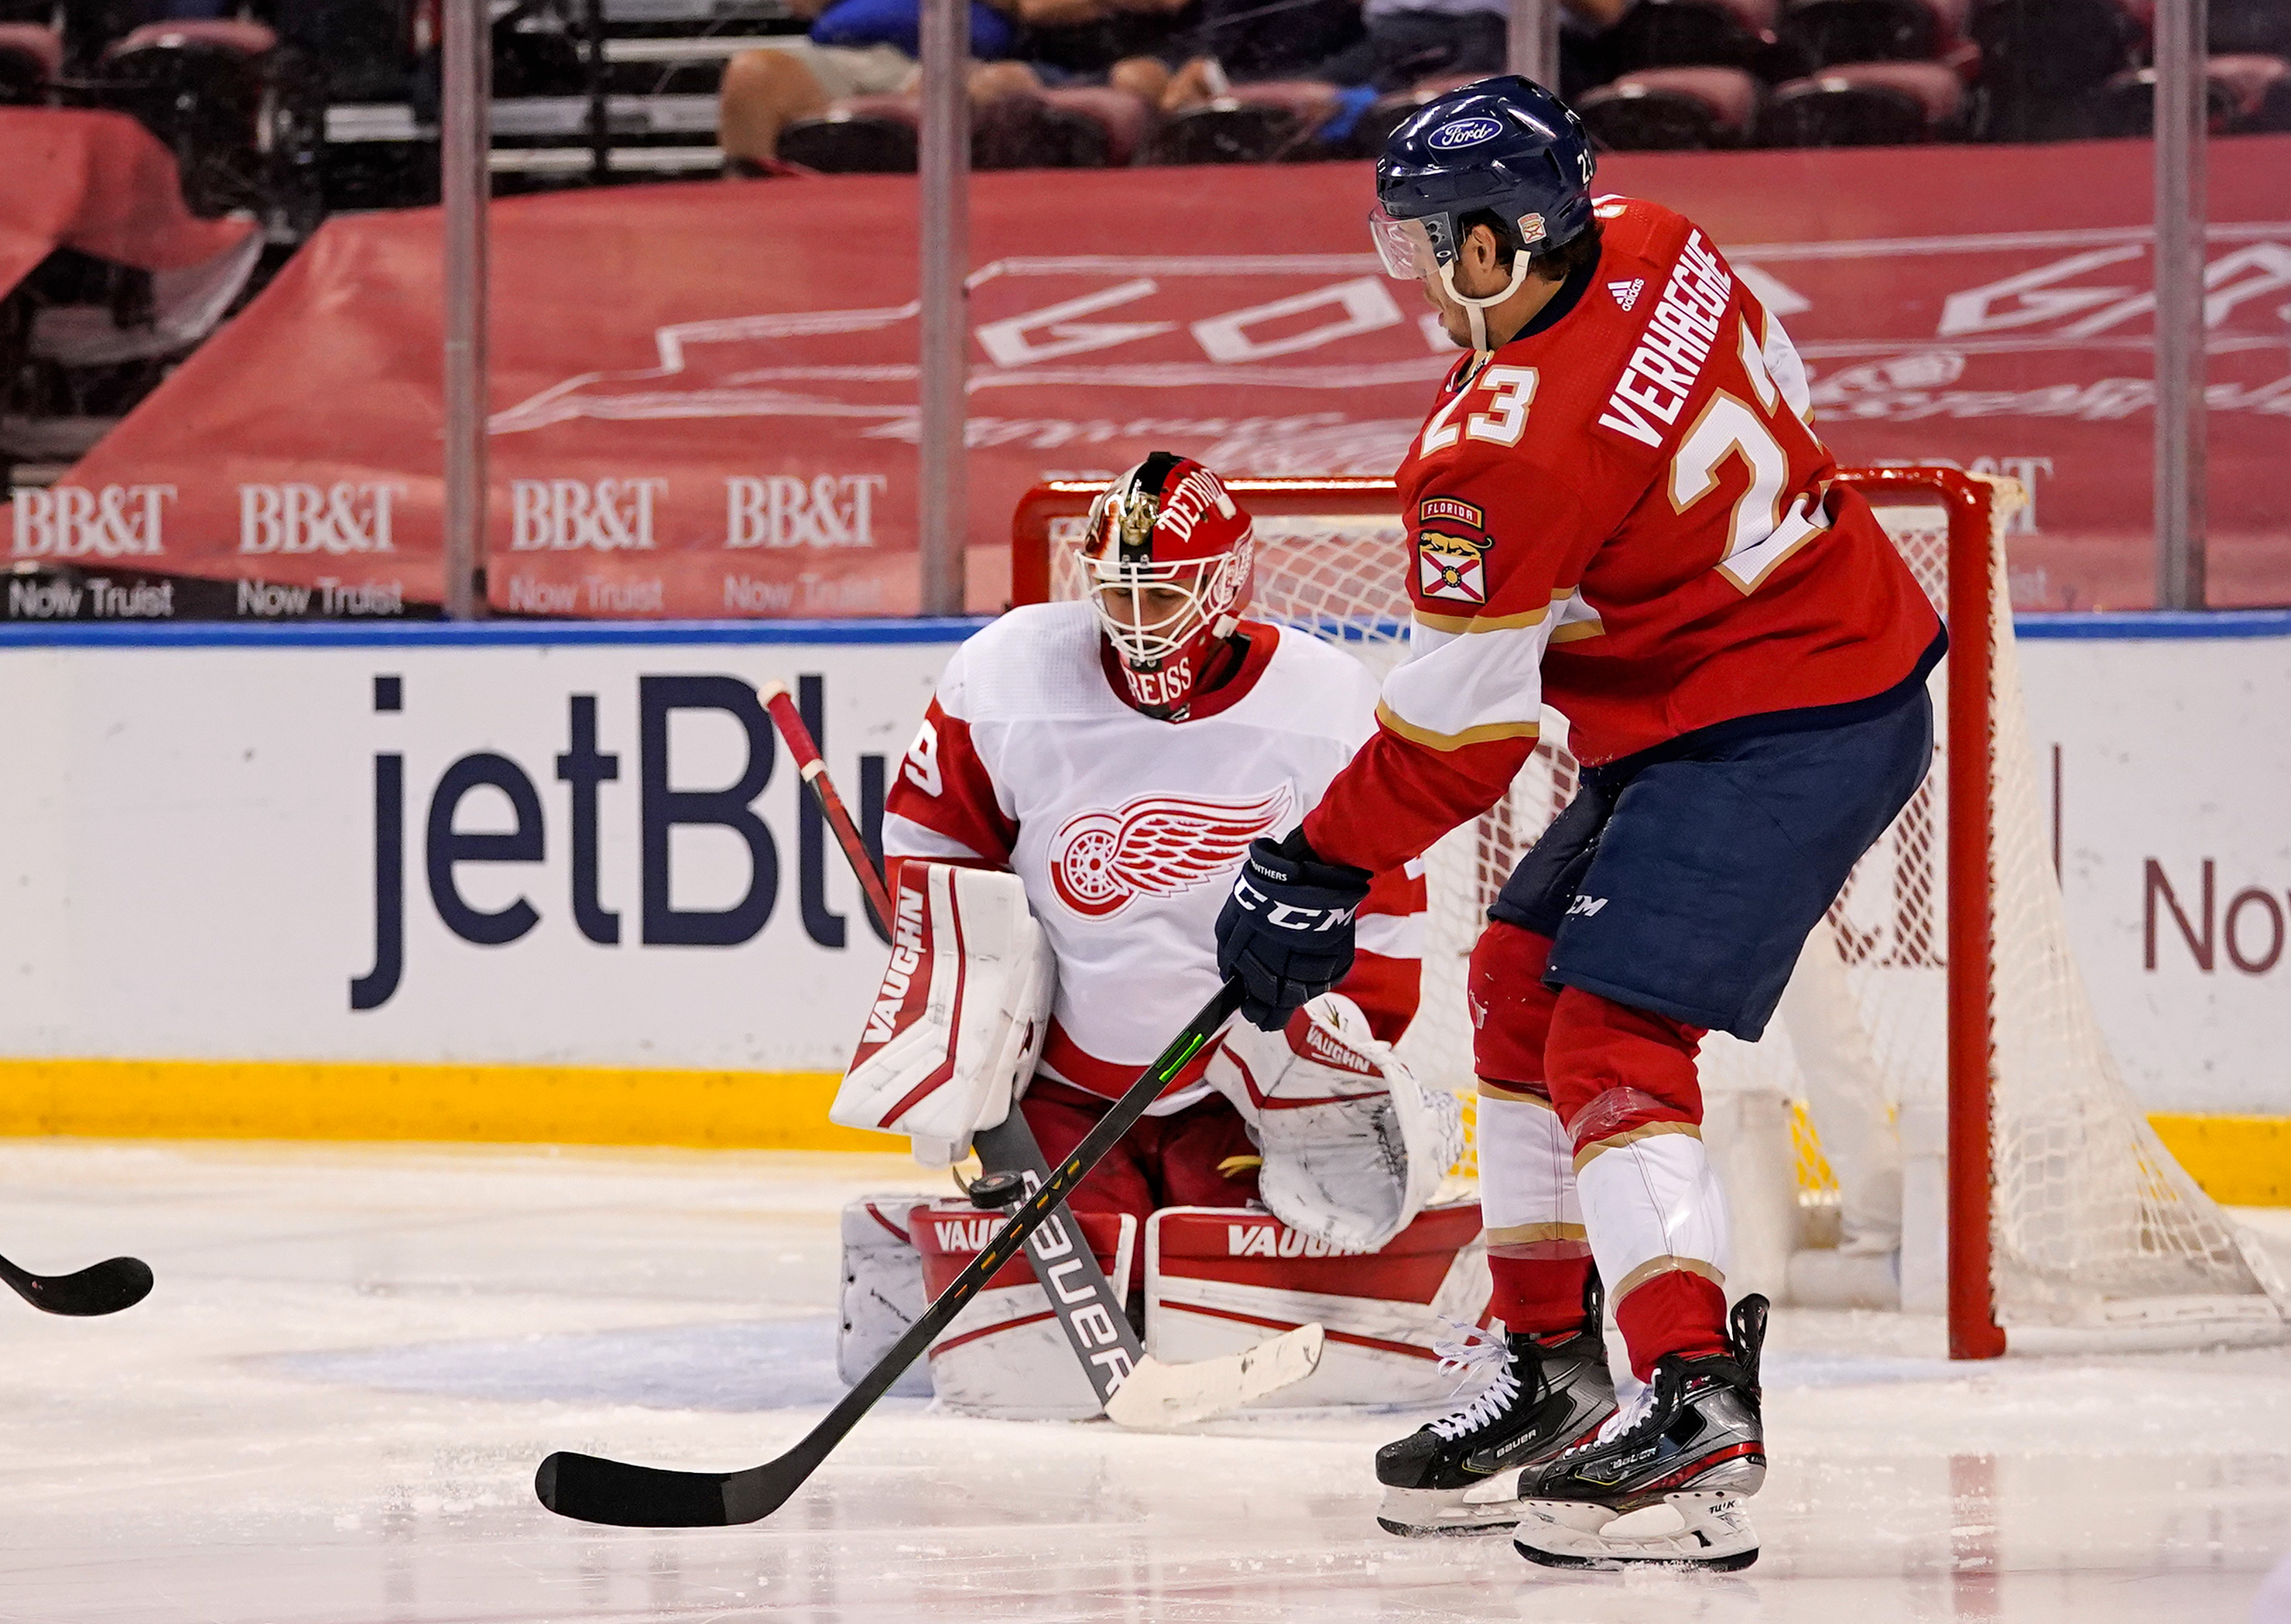 NHL: Detroit Red Wings at Florida Panthers